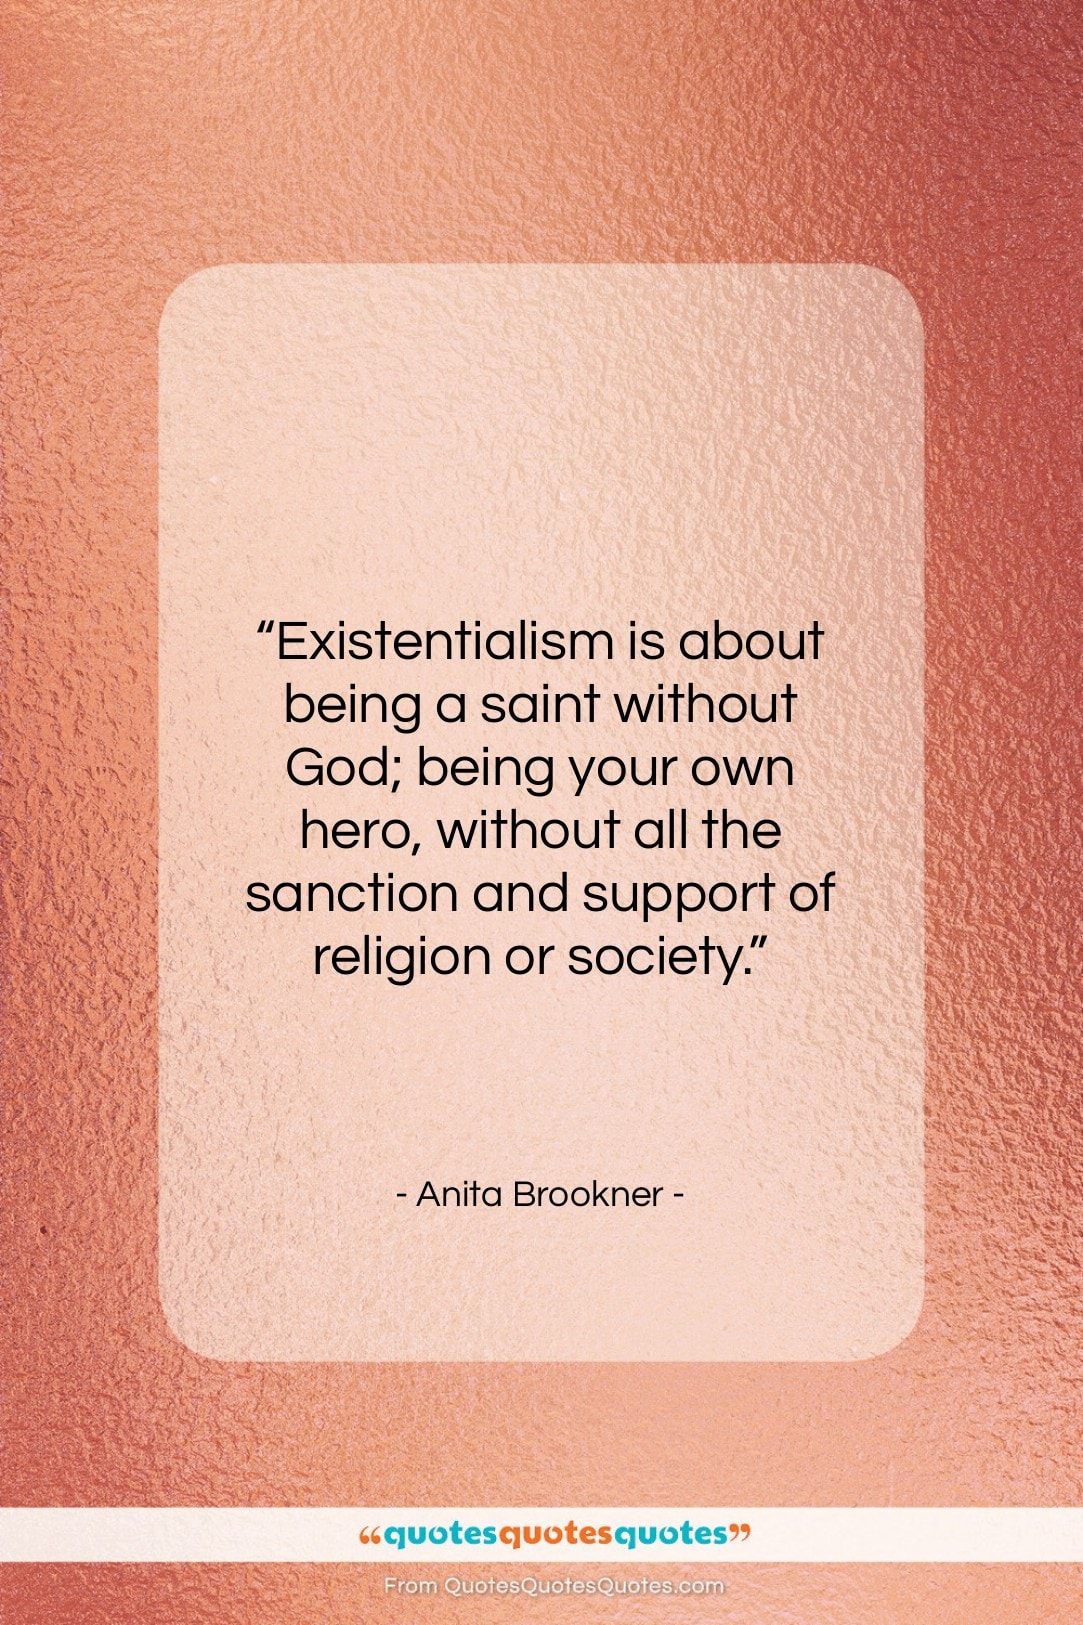 """Anita Brookner quote: """"Existentialism is about being a saint without…""""- at QuotesQuotesQuotes.com"""